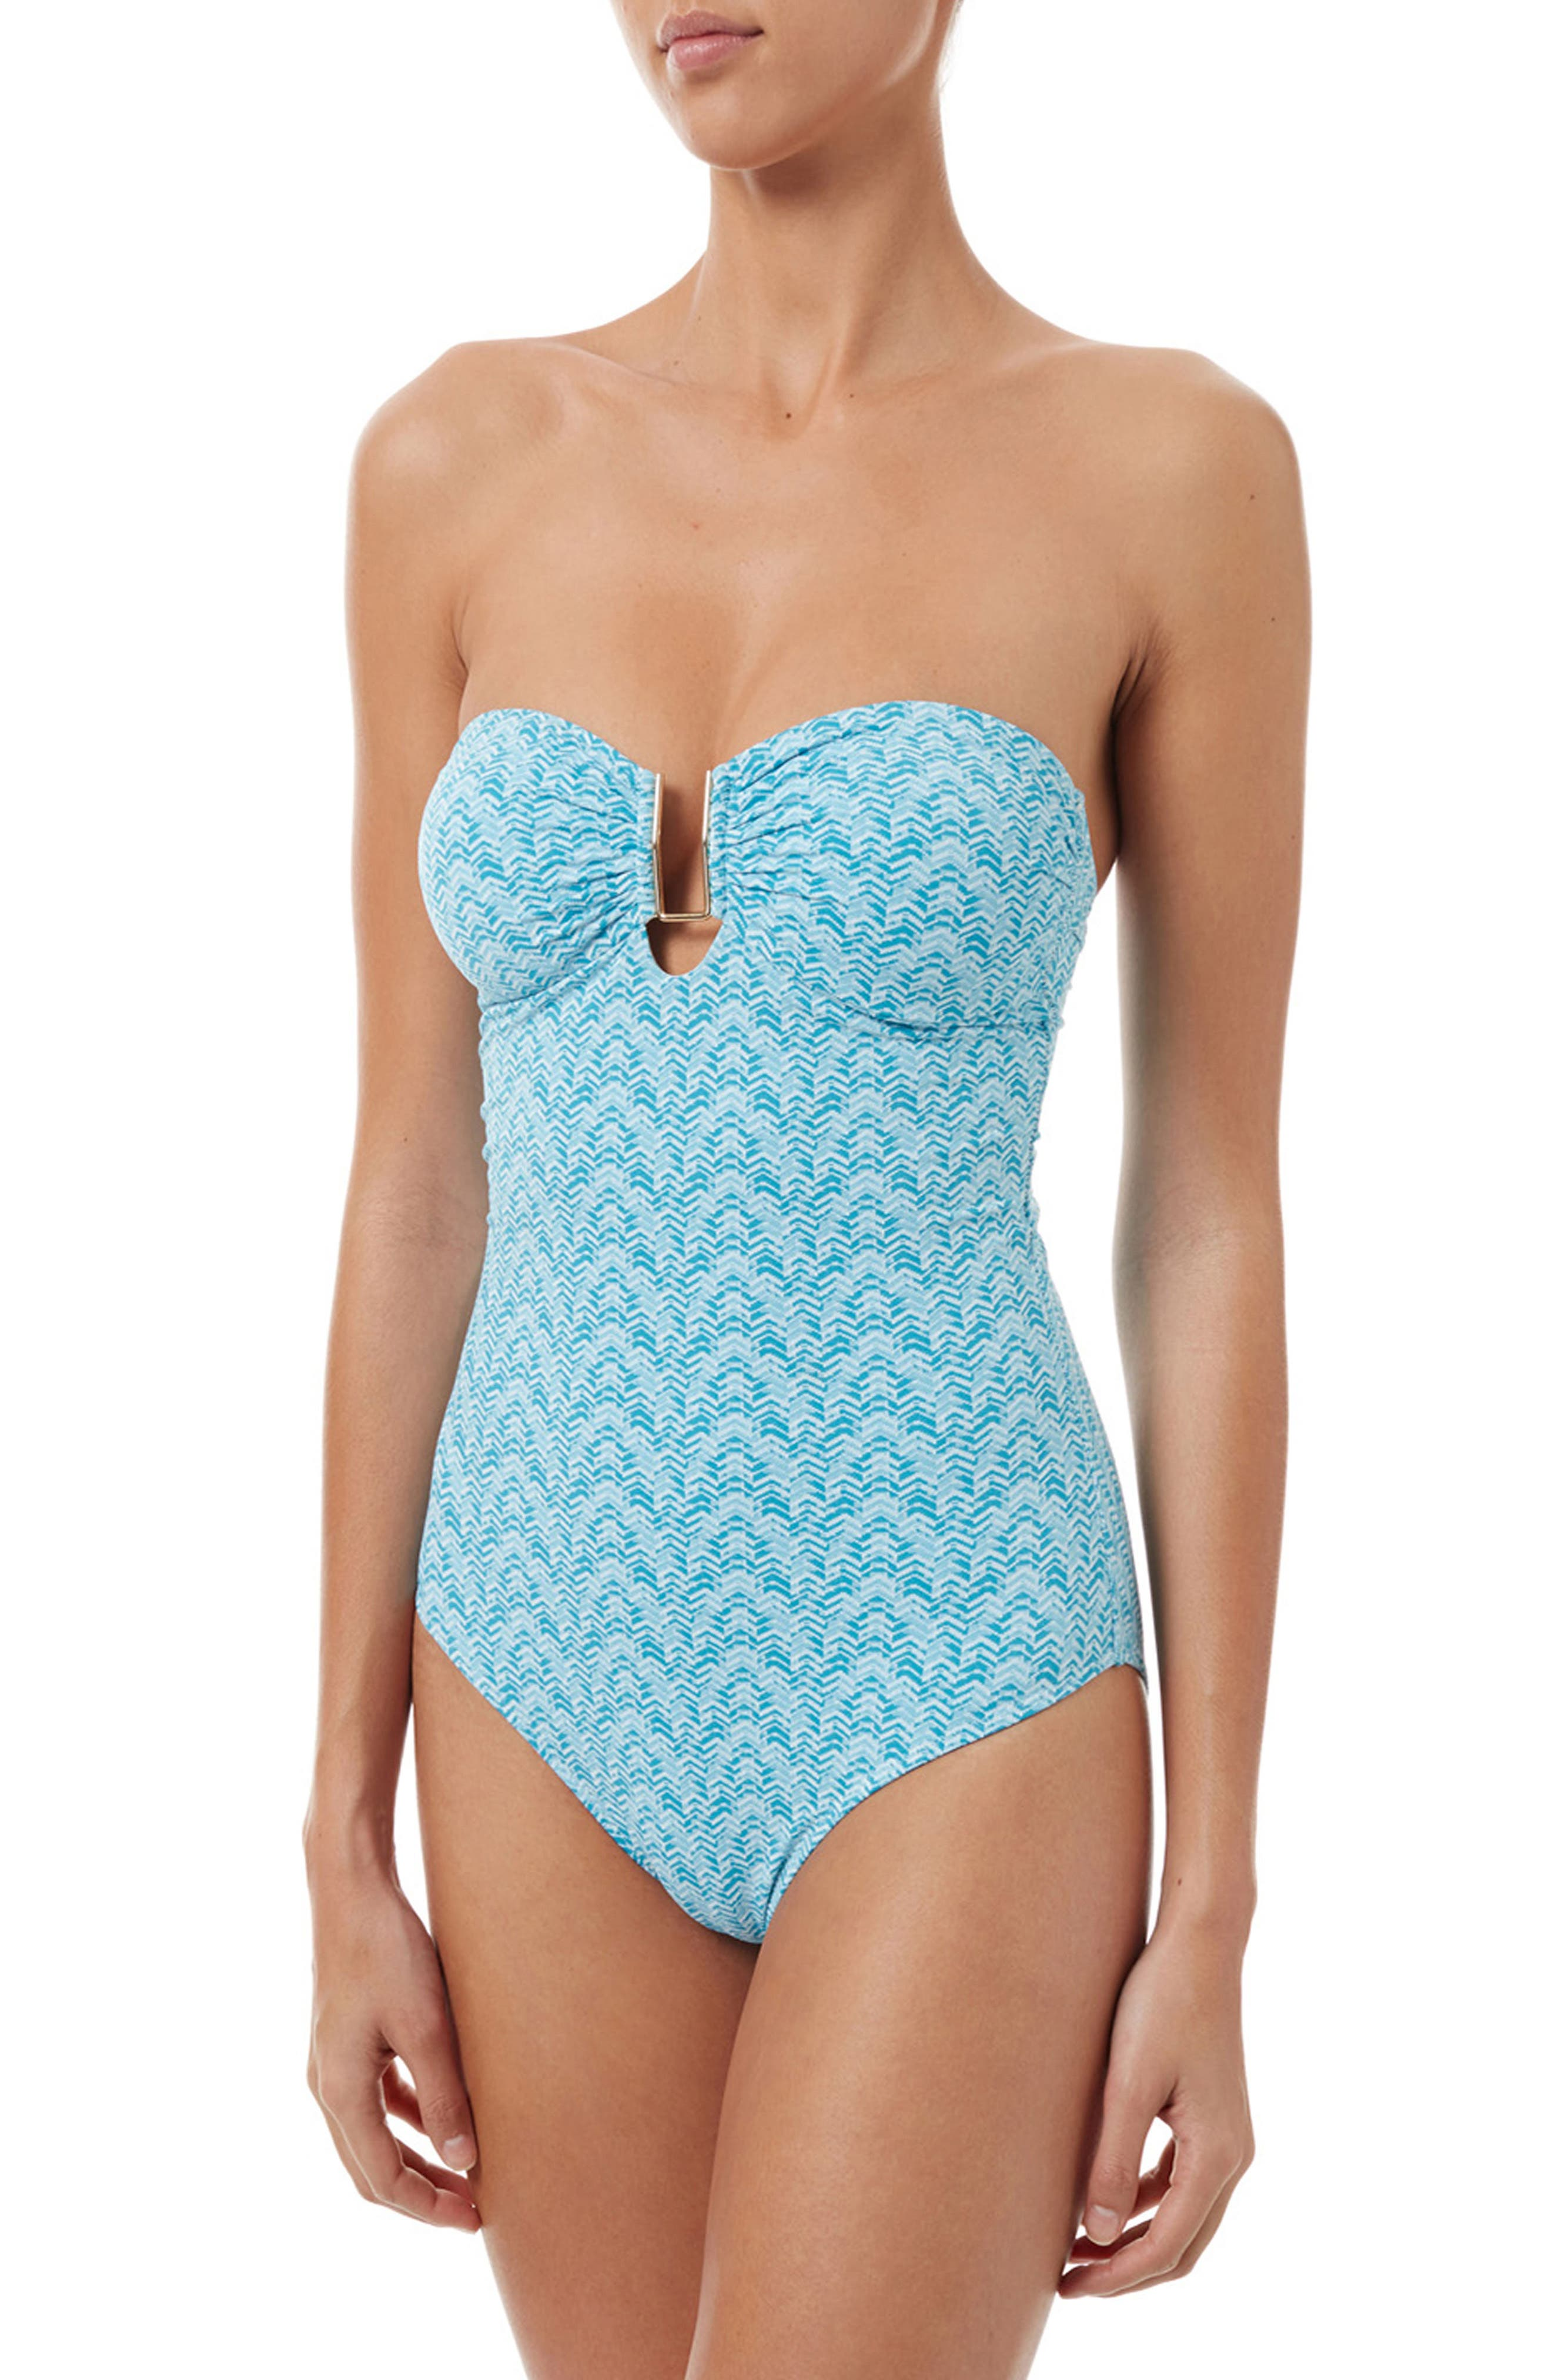 Argentina One-Piece Swimsuit,                             Main thumbnail 1, color,                             407